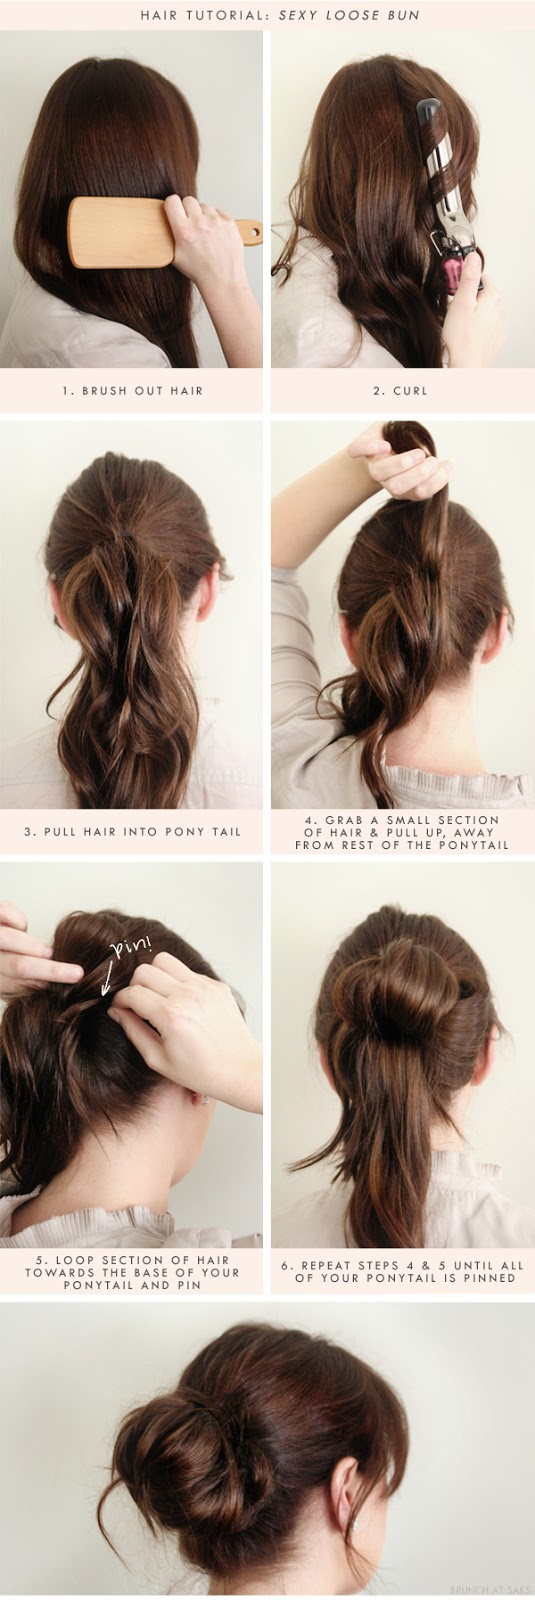 Enjoyable Top 25 Messy Hair Bun Tutorials Perfect For Those Lazy Mornings Hairstyle Inspiration Daily Dogsangcom